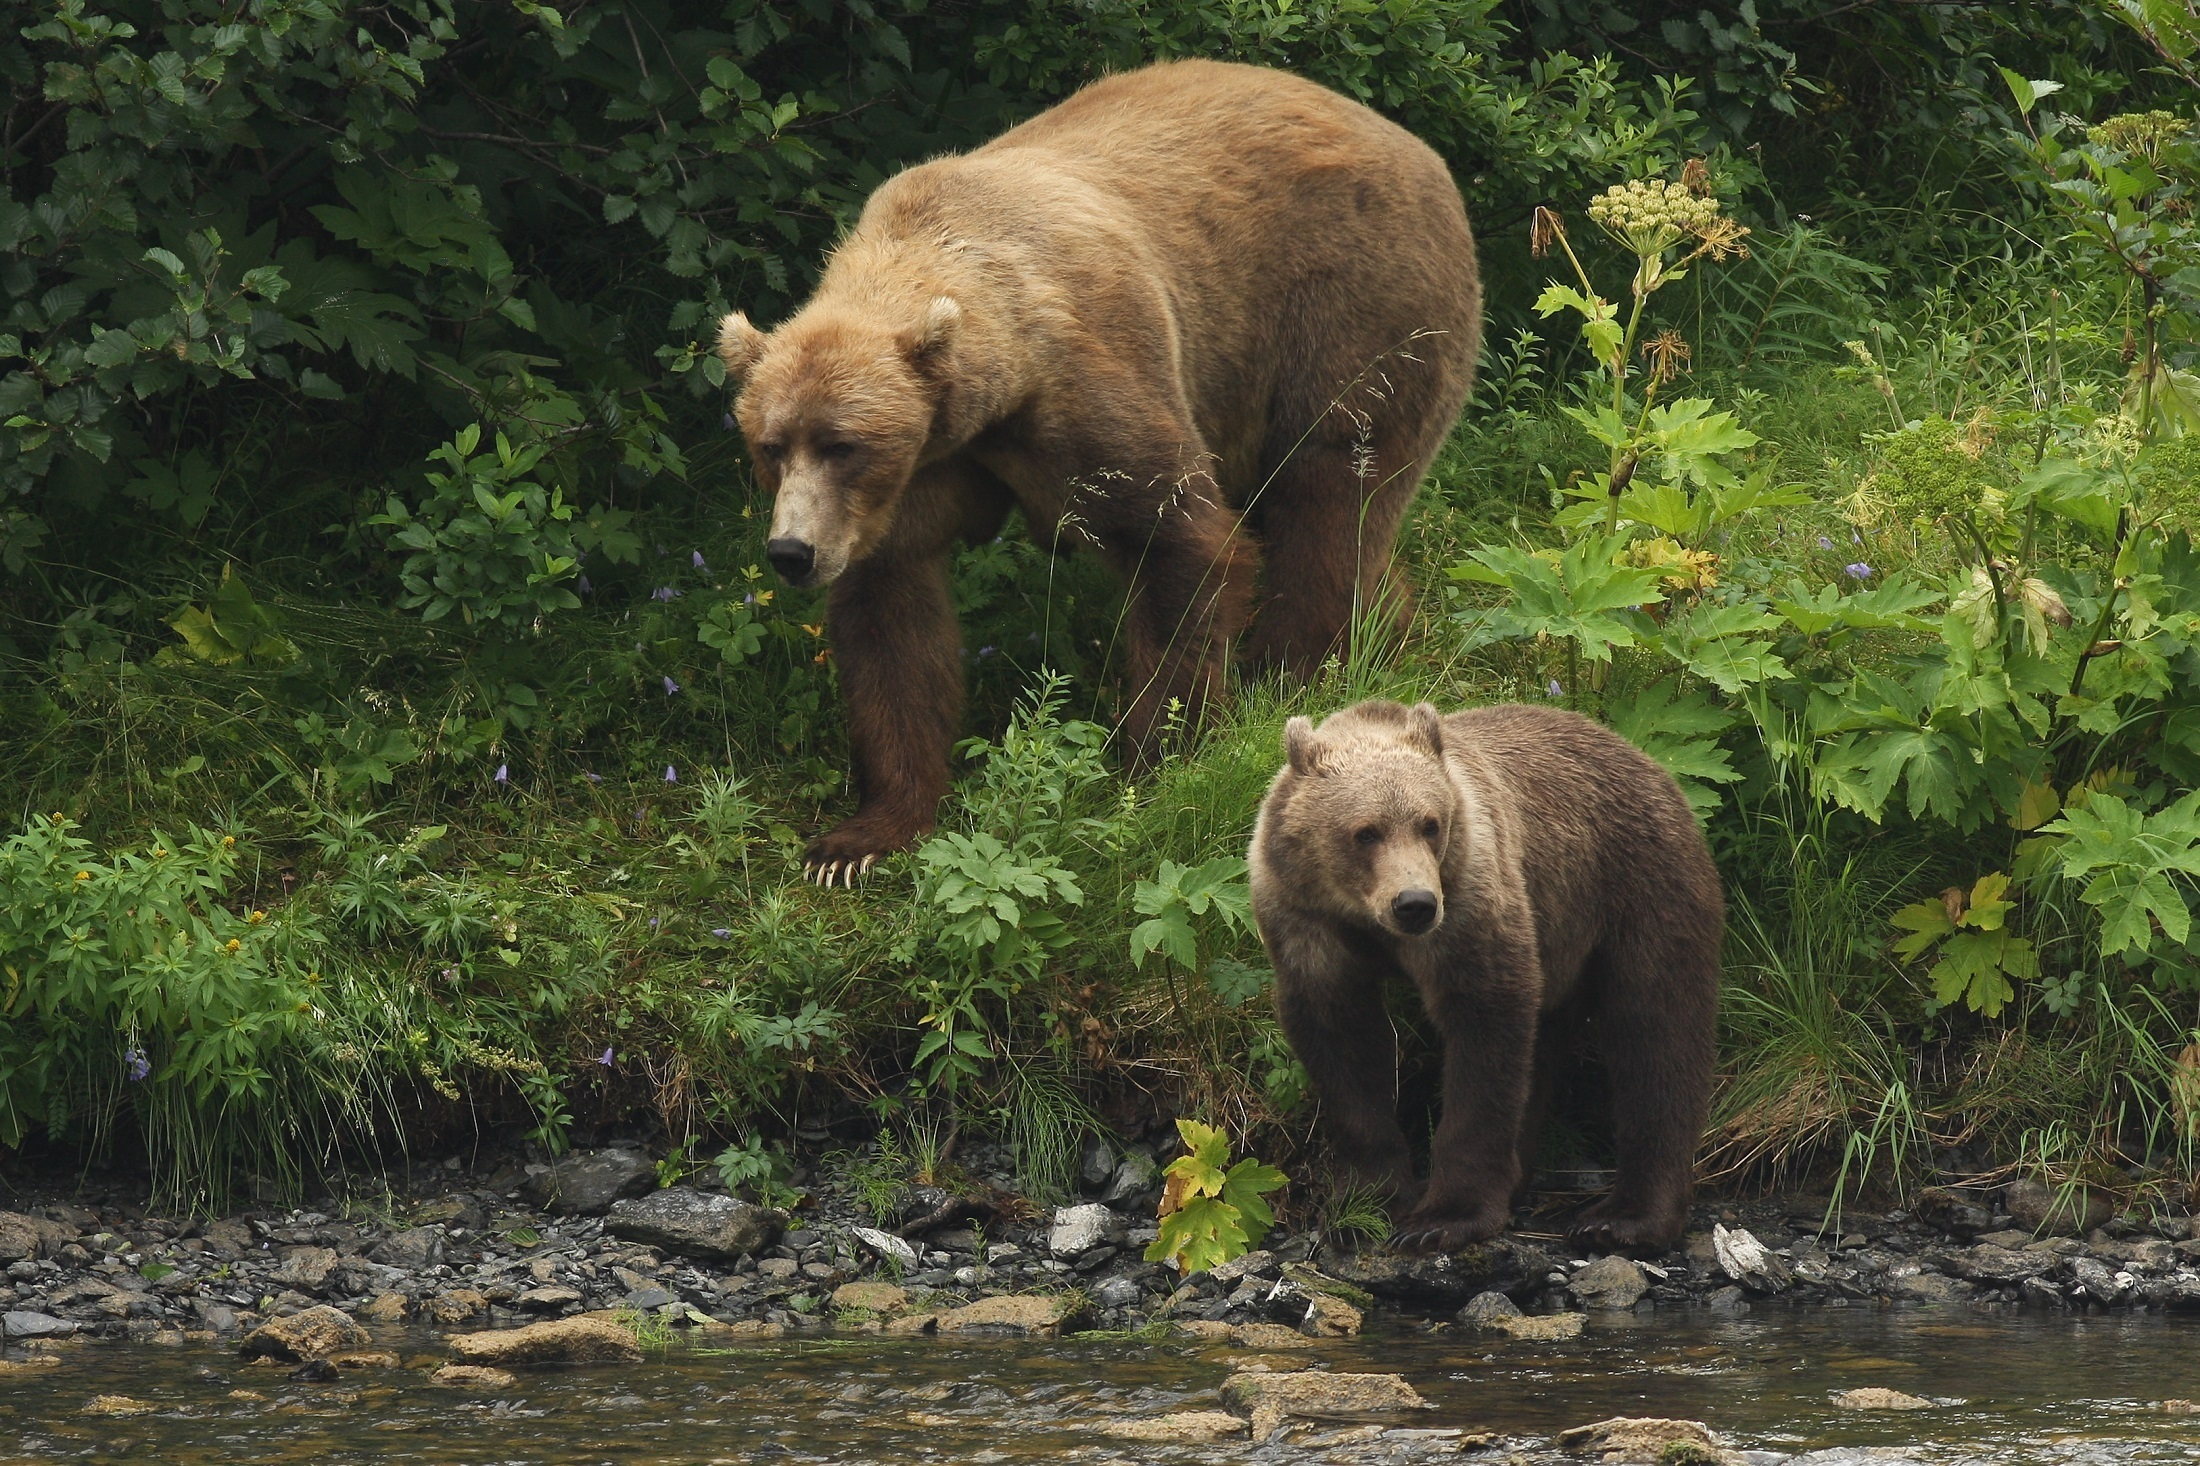 Kodiak Brown Bear, Animal, Bear, Brown, Jungle, HQ Photo